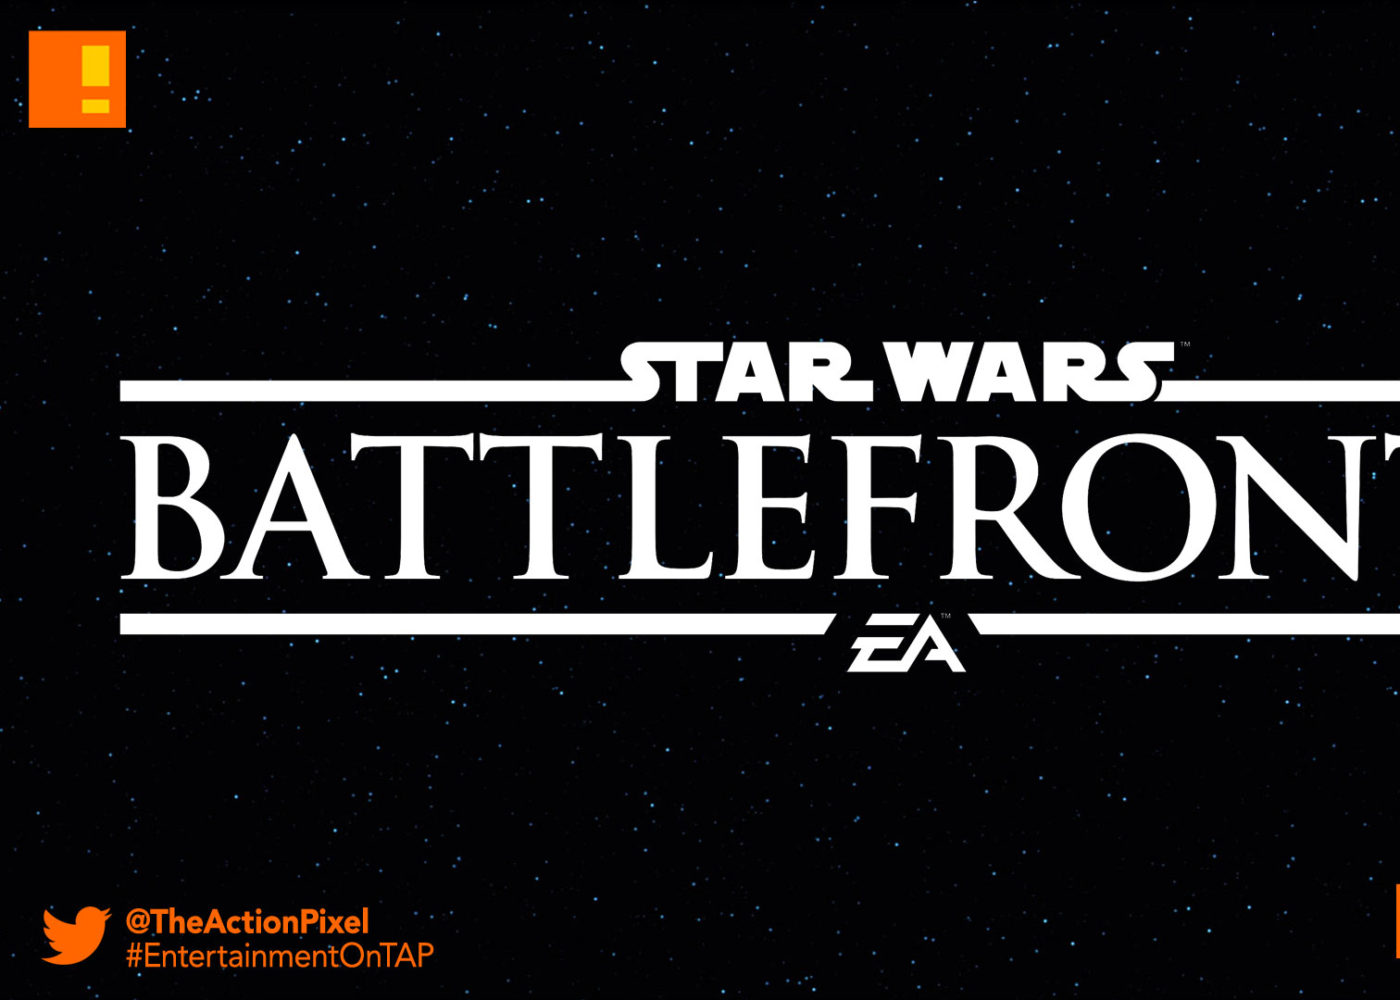 battlefront 2,star wars, ea, electronic arts, dice ea, dice, ea games, star wars: battlefront 2, star wars: battlefront II, star wars battlefront,star wars battlefront 2, the action pixel,entertainment on tap